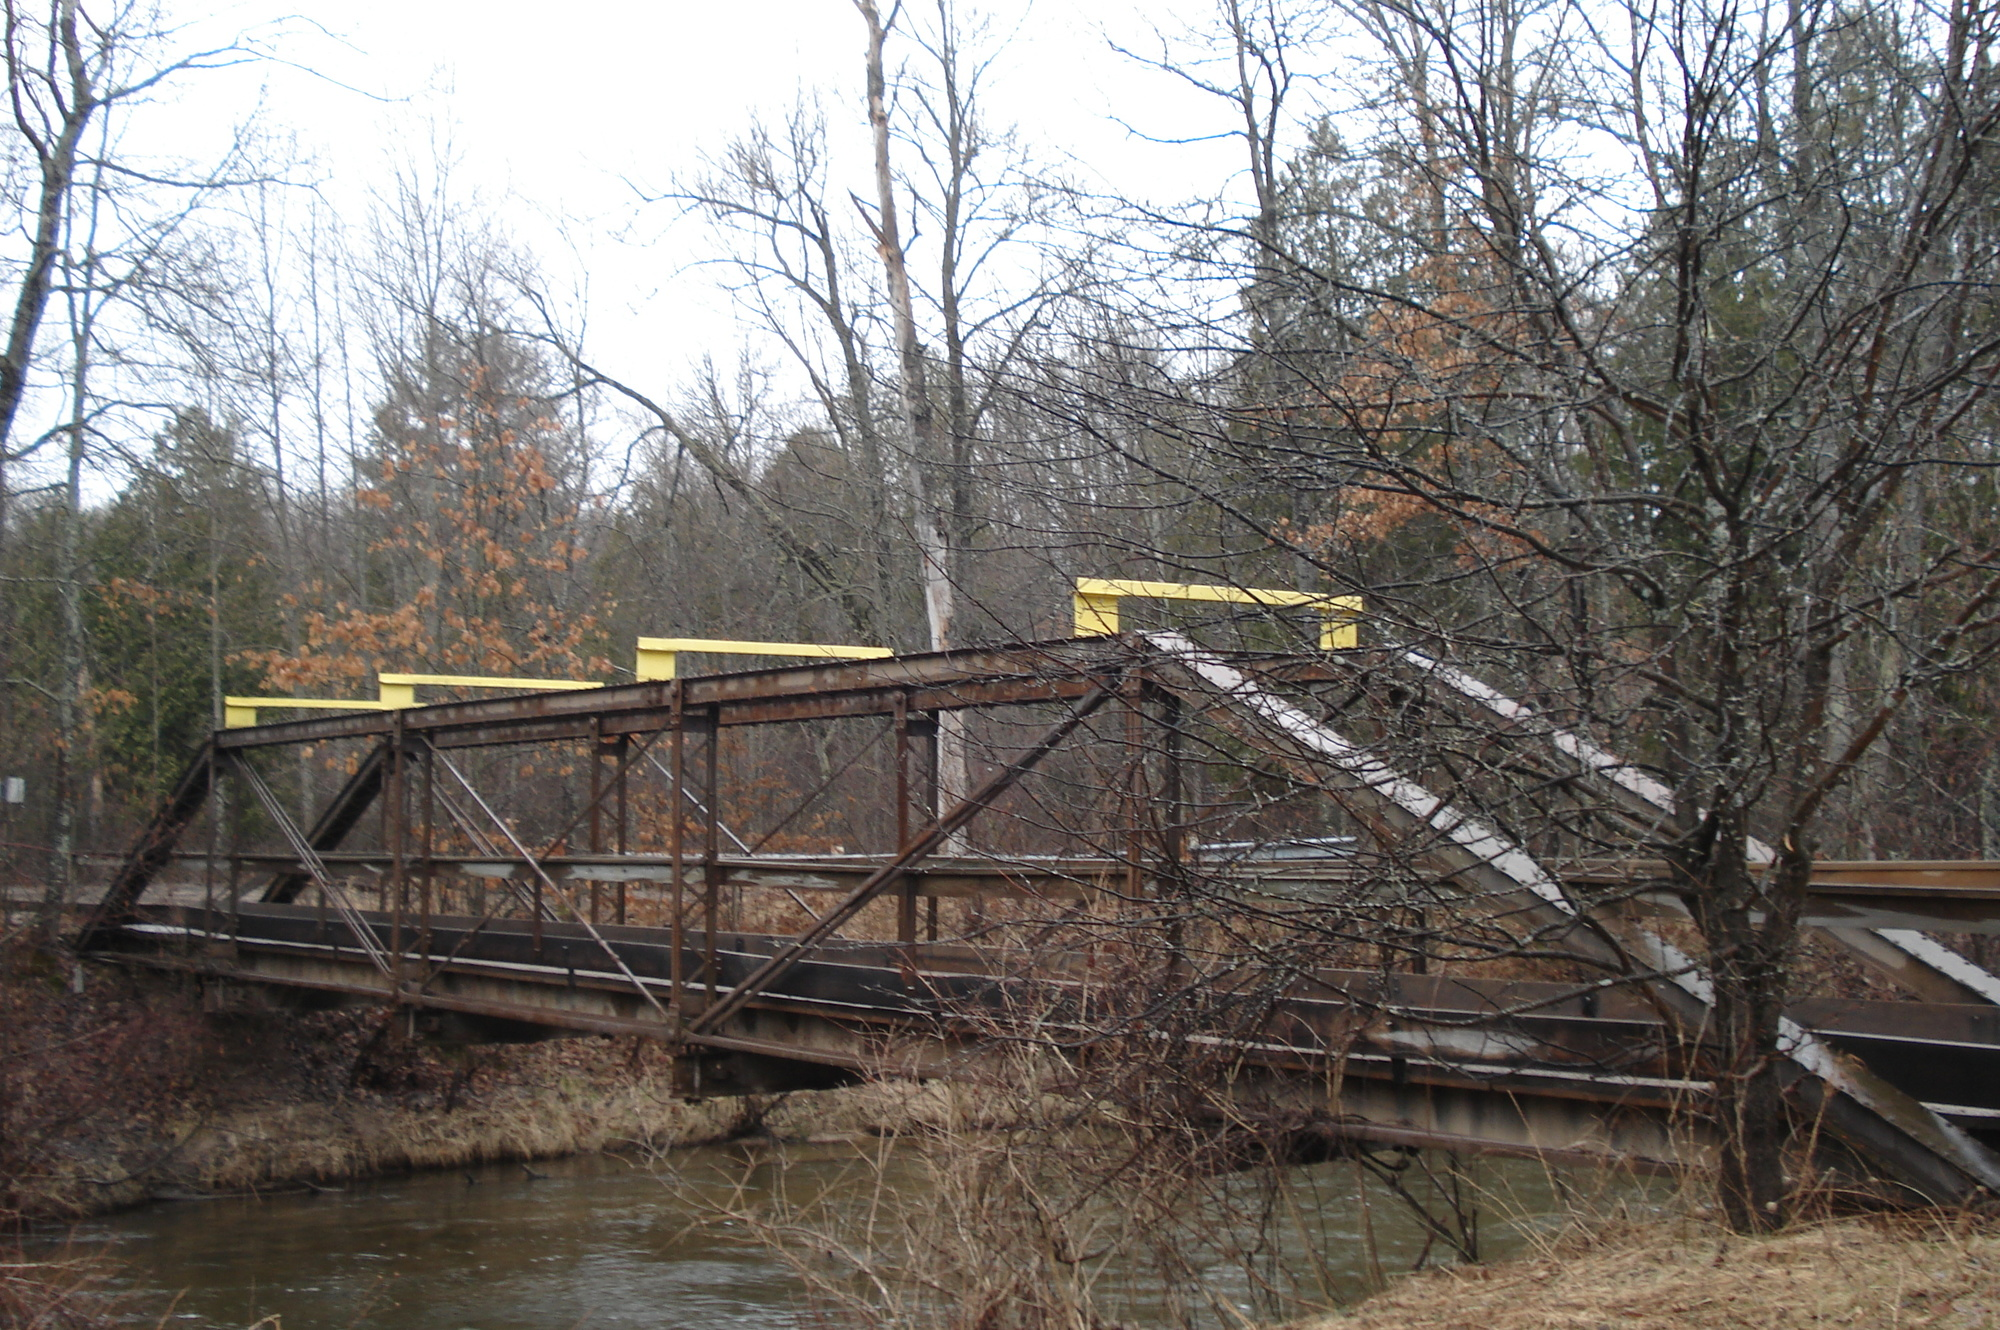 Design was recently completed for replacing the dual use off-road vehicle/snowmobile Lincoln Bridge in Lake County.